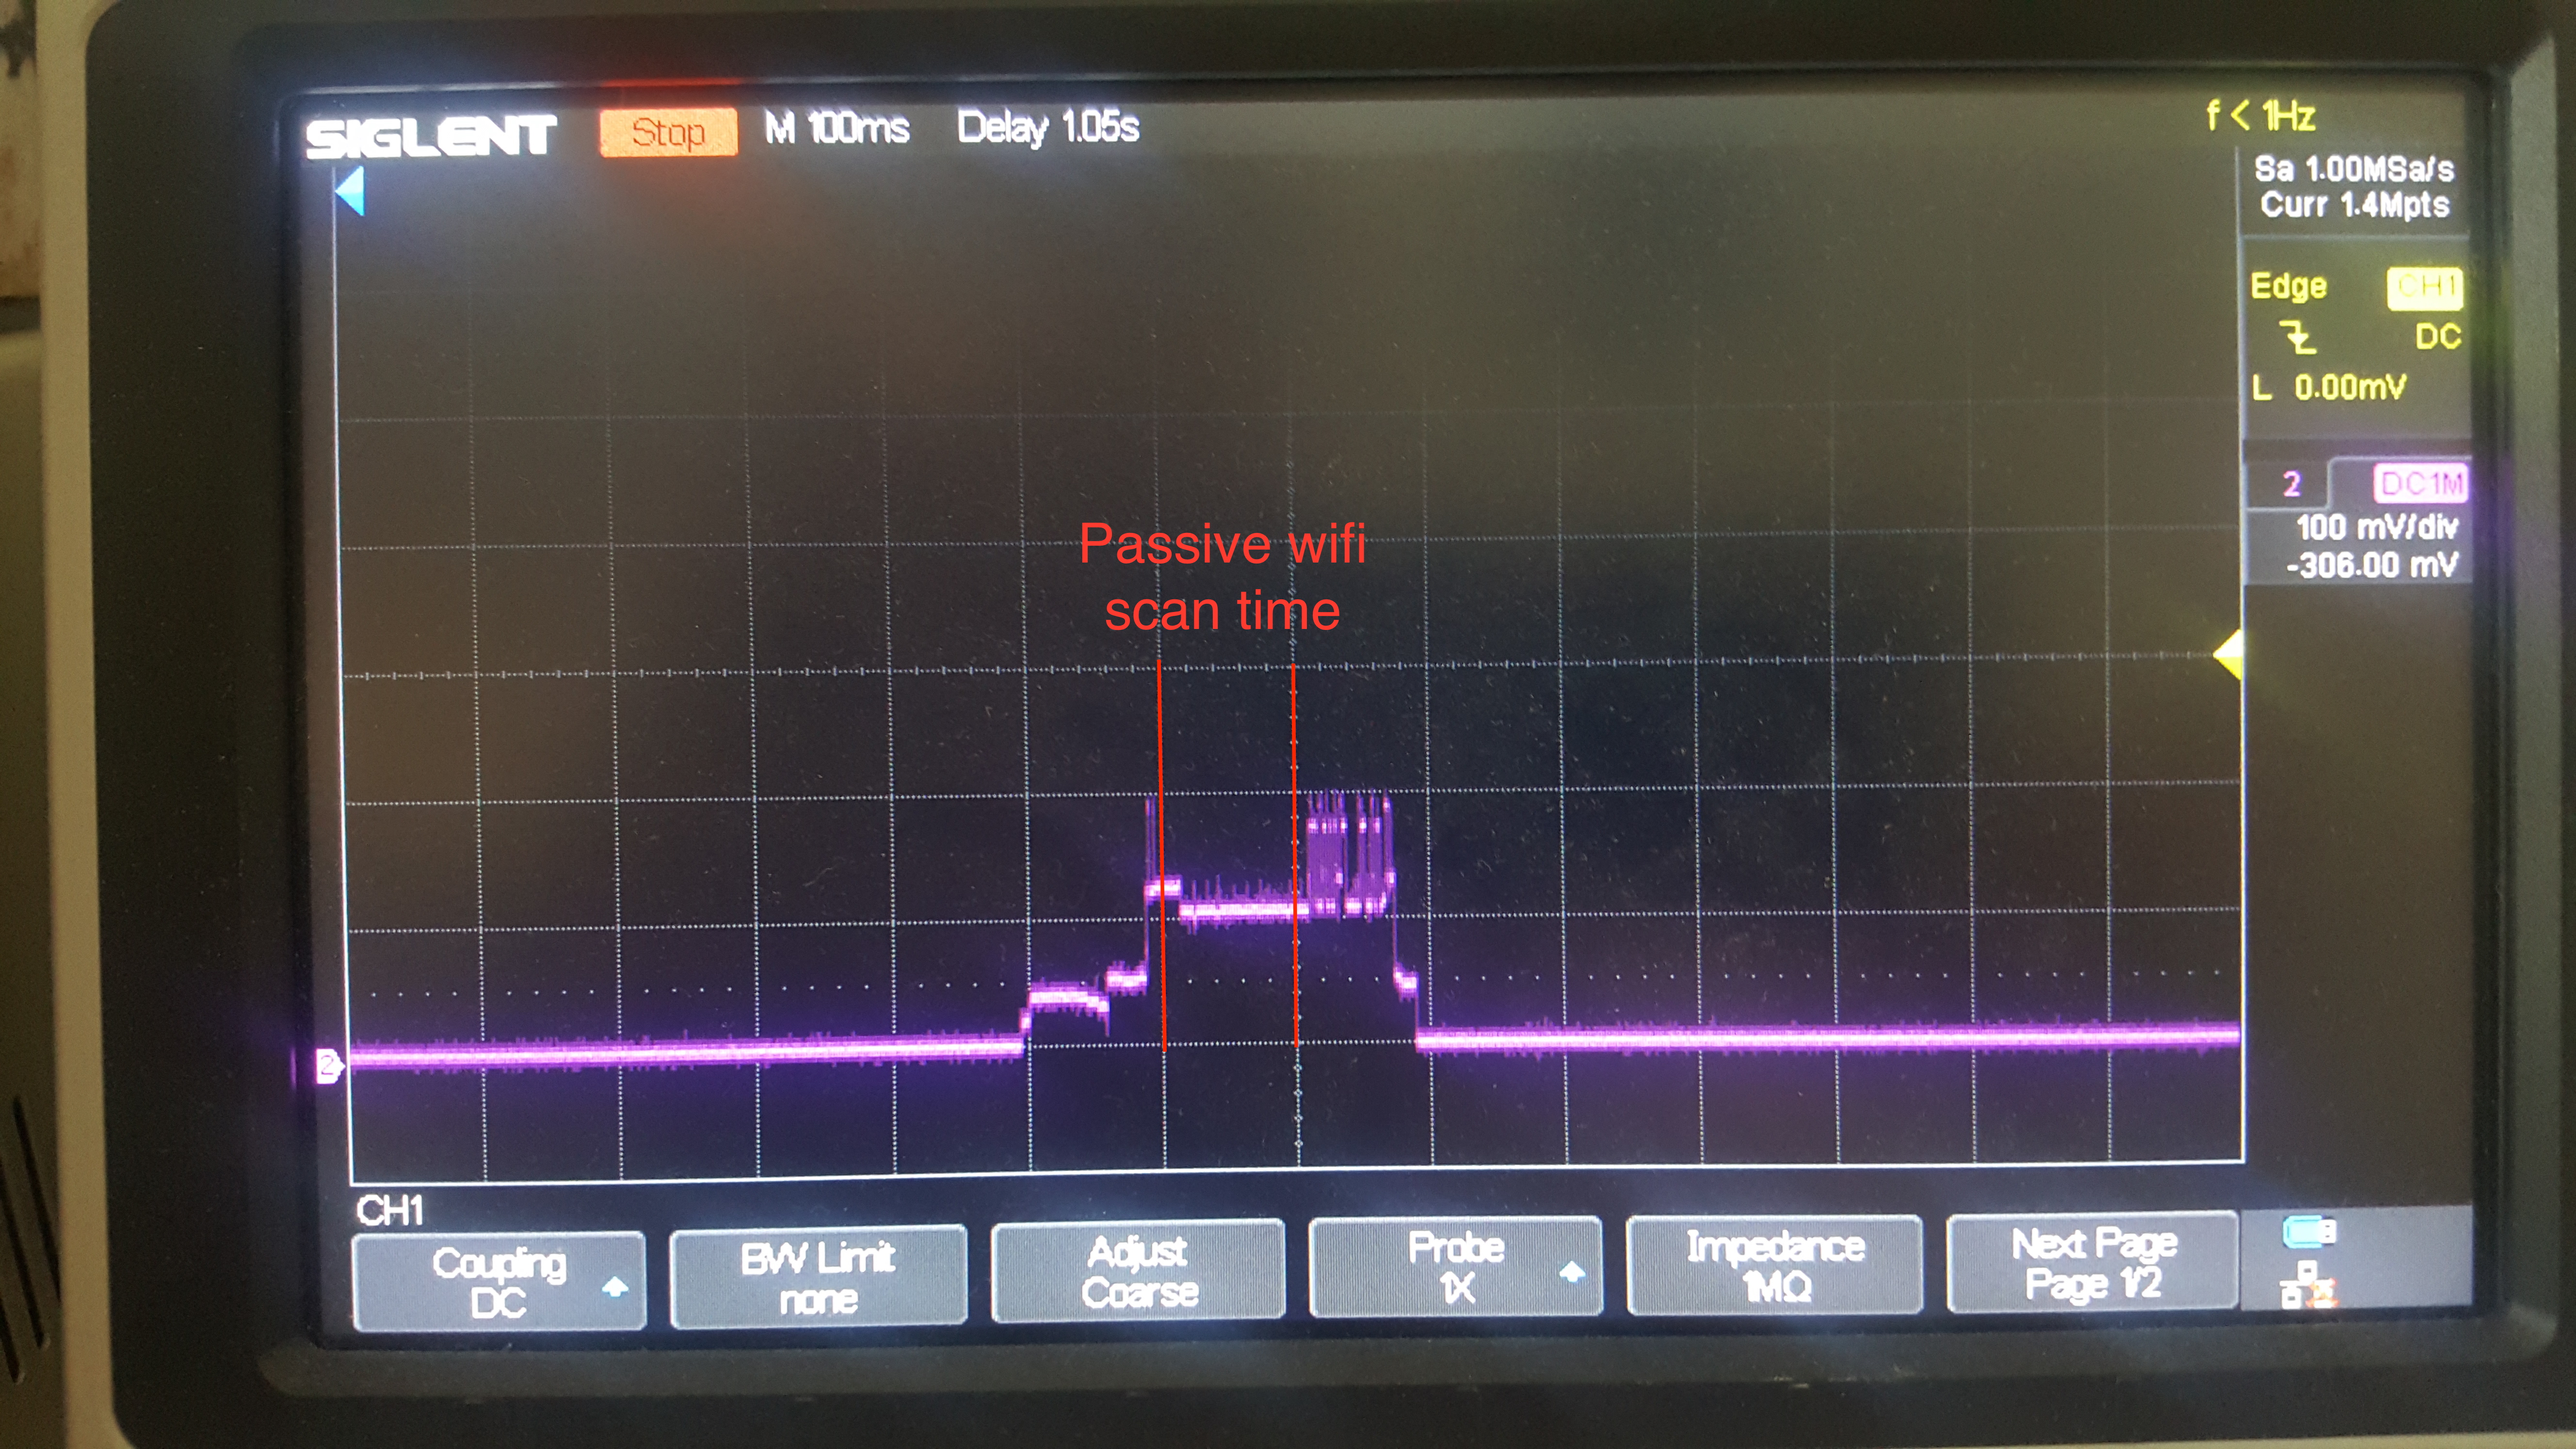 Faster Wifi station connect improvement - avoid 100ms passive scan